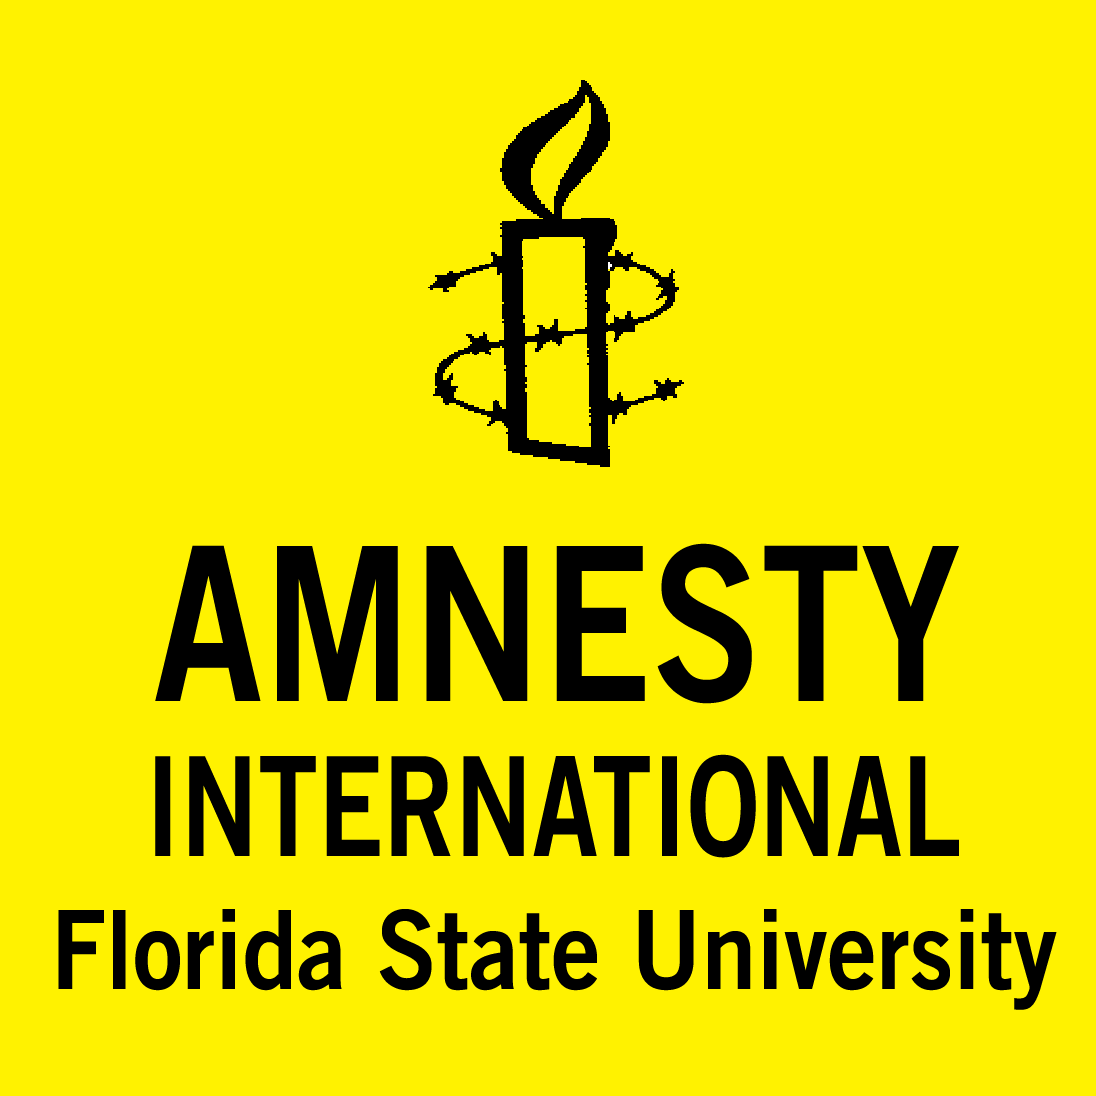 Candle with barbed wire around it and Amnesty International Florida State University below it